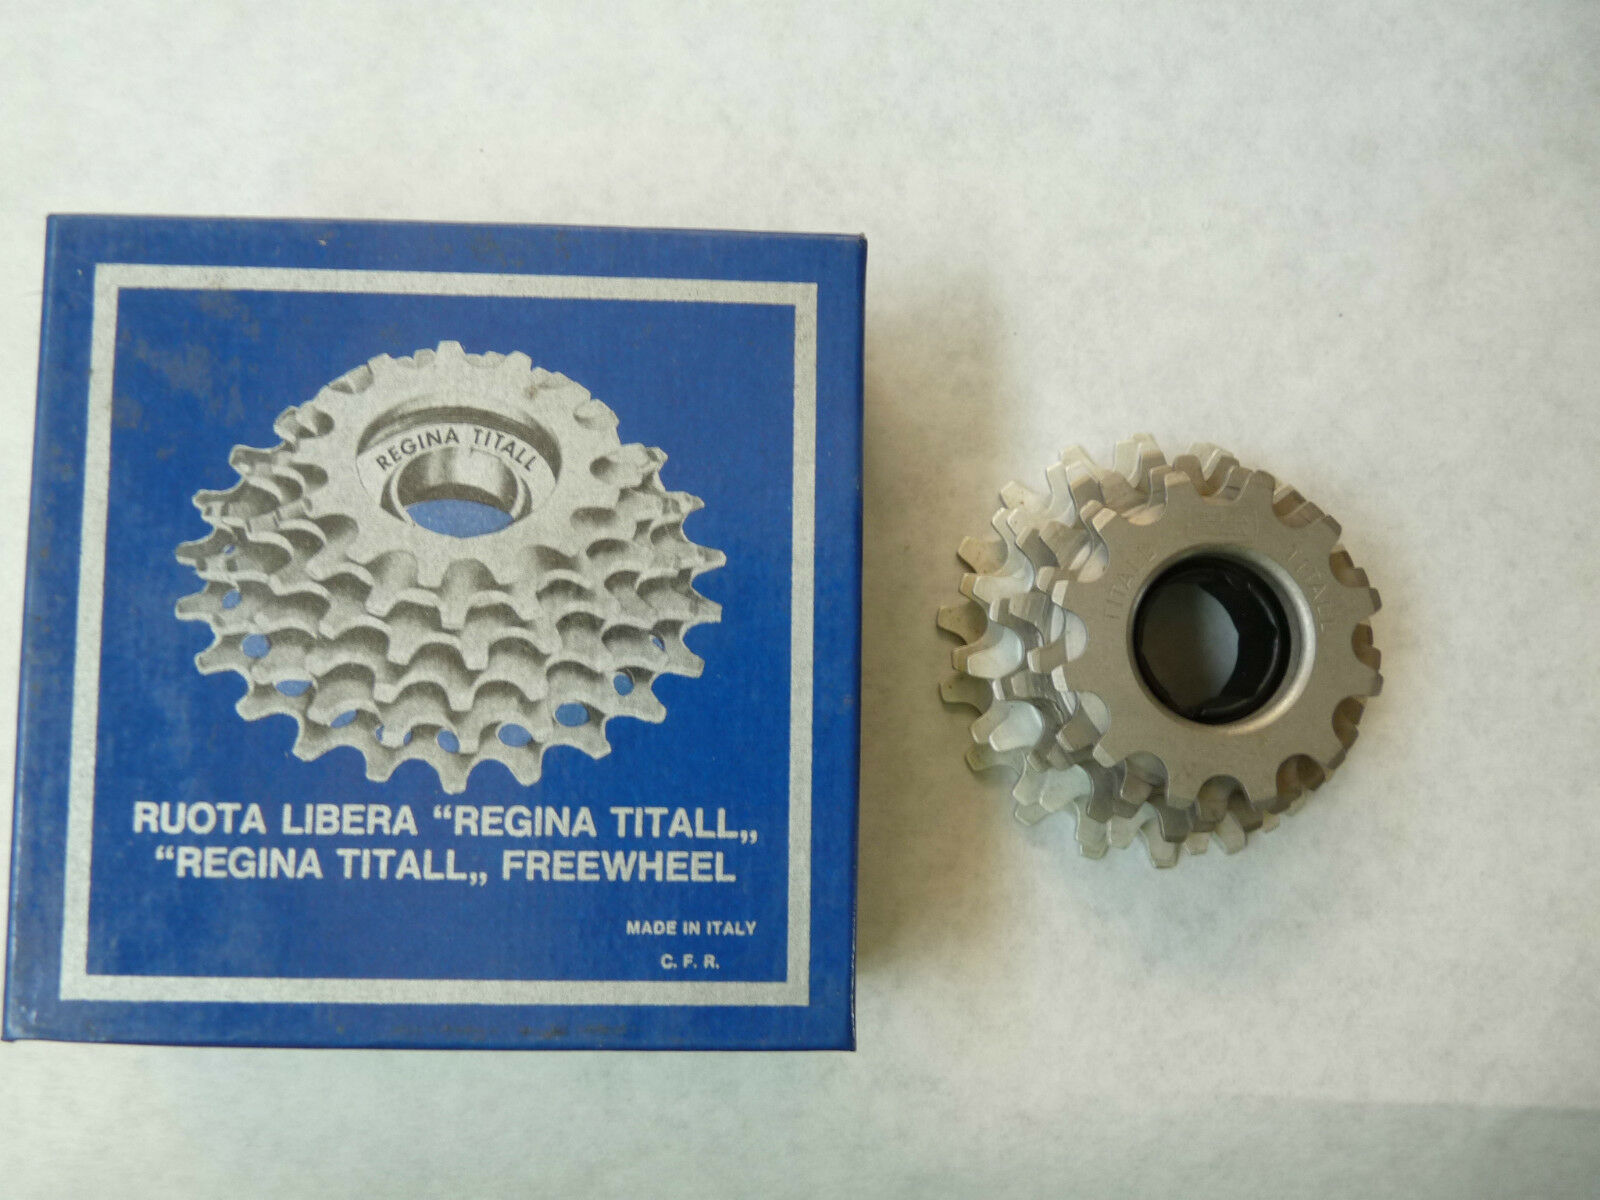 Regina Titanium Freewheel 7 Speed  12-18 ISO Vintage Road Bike 227 grams NOS  welcome to order